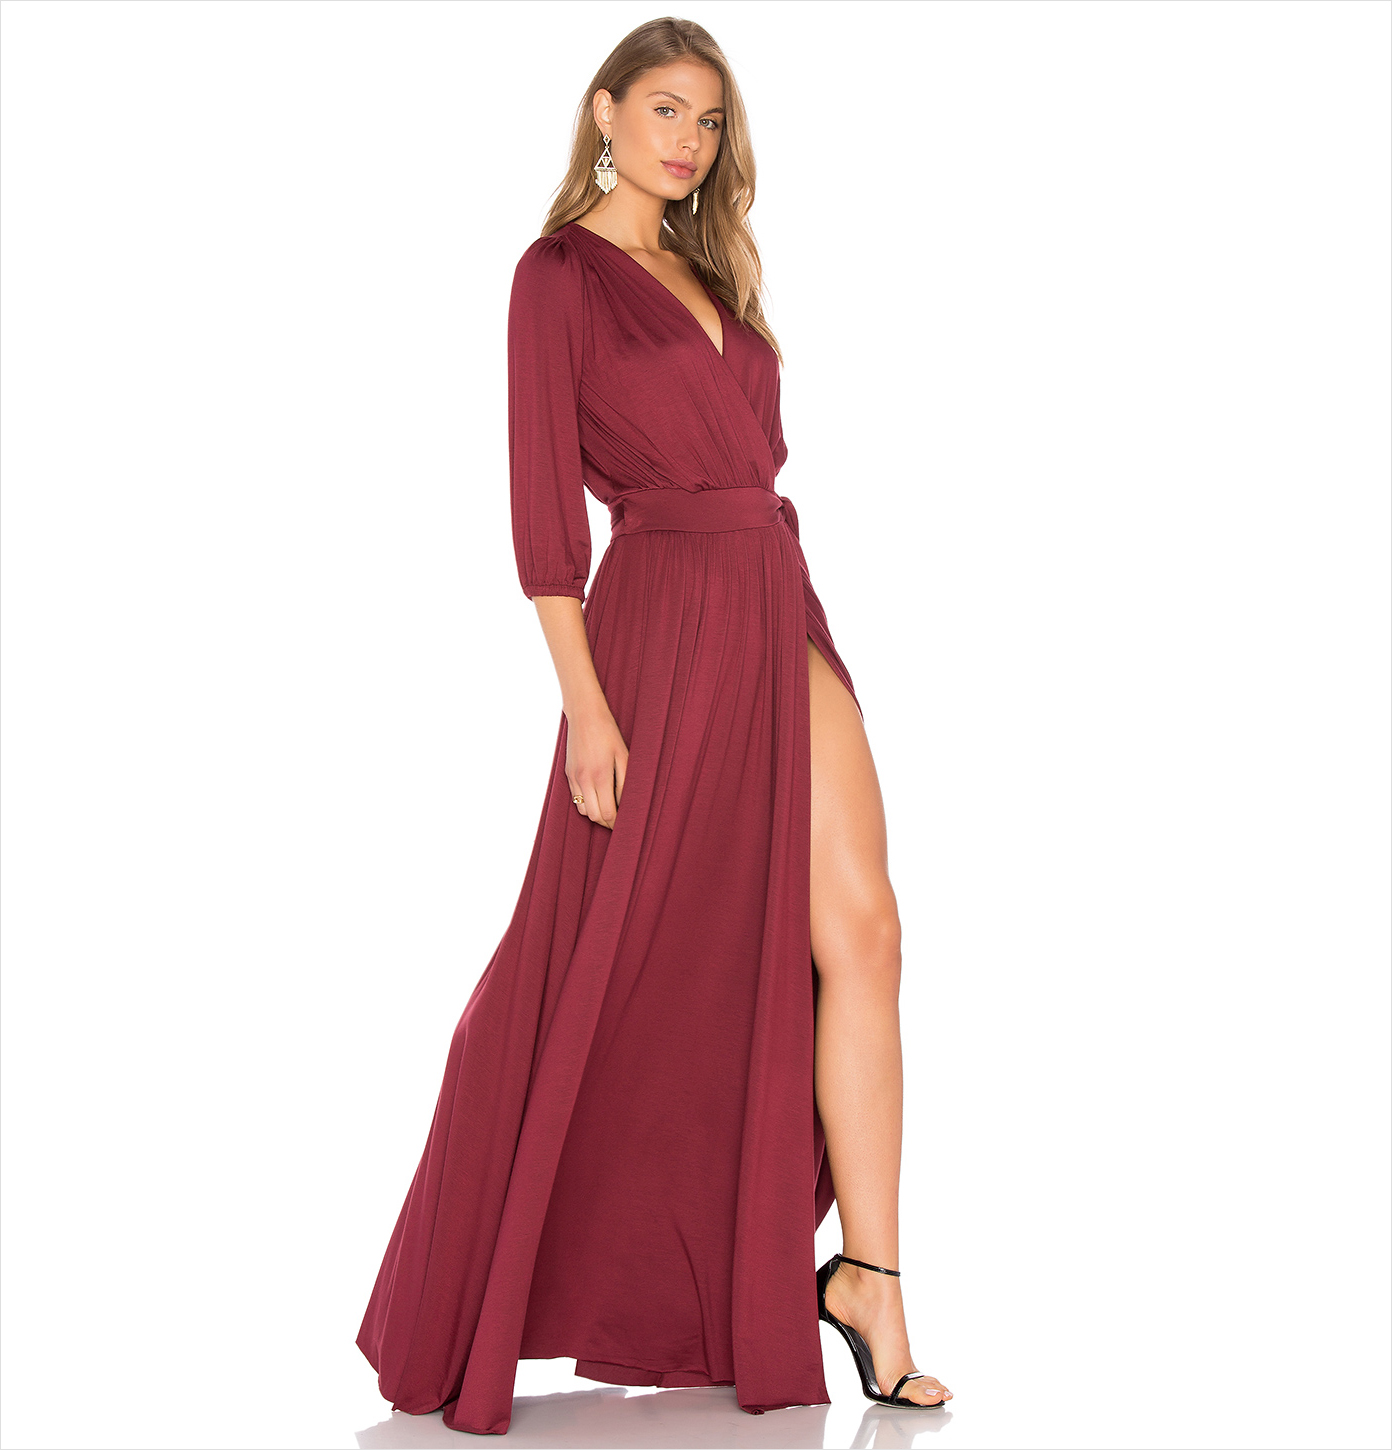 Wedding guest dress ideas long sleeve dresses inside for Guest of wedding dresses fall